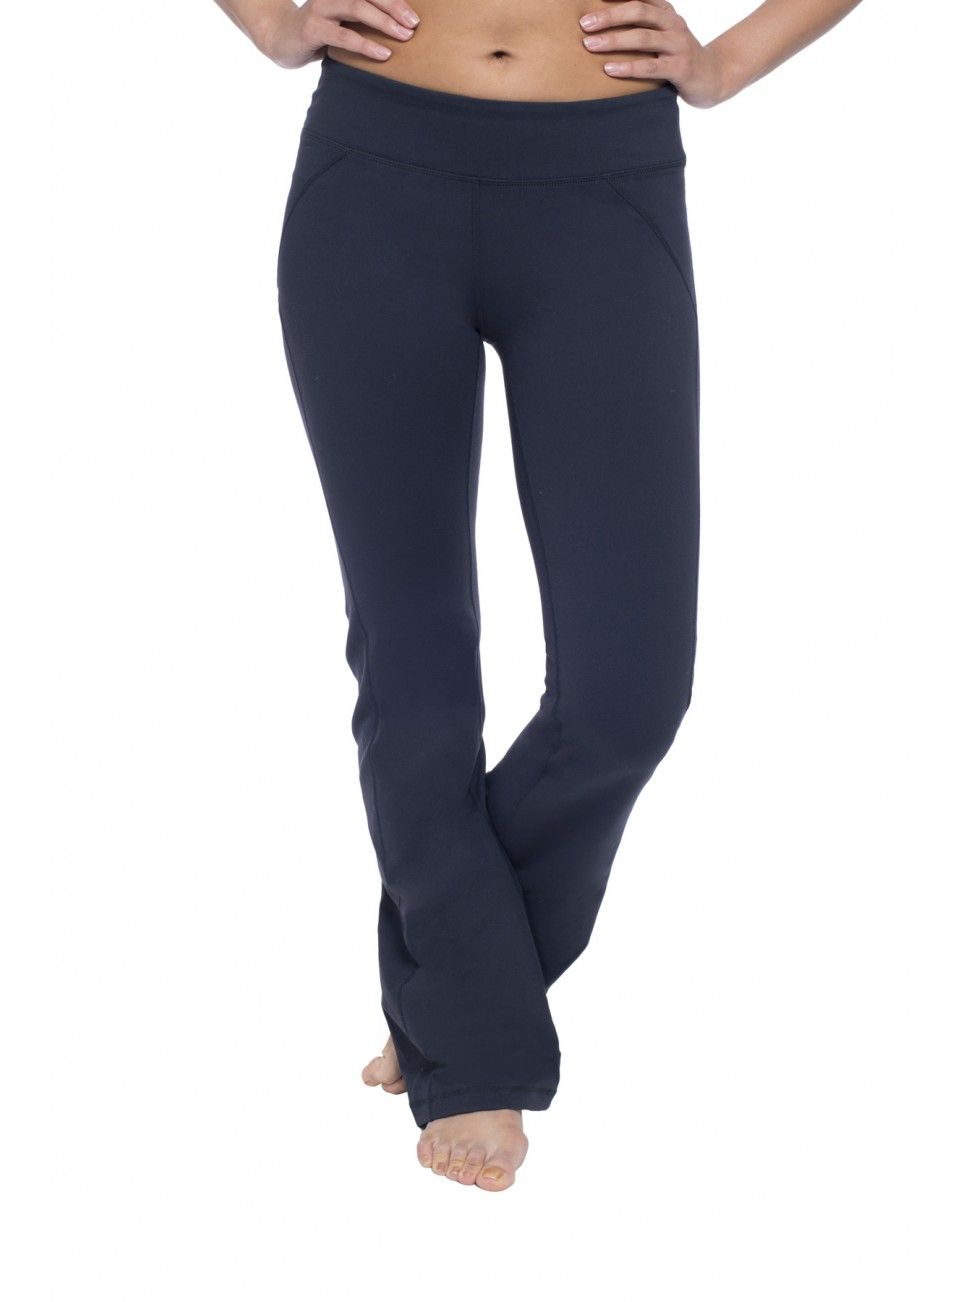 c6067f927b Killer Caboose Pant Black | Earthy punky luxe | Compression pants ...